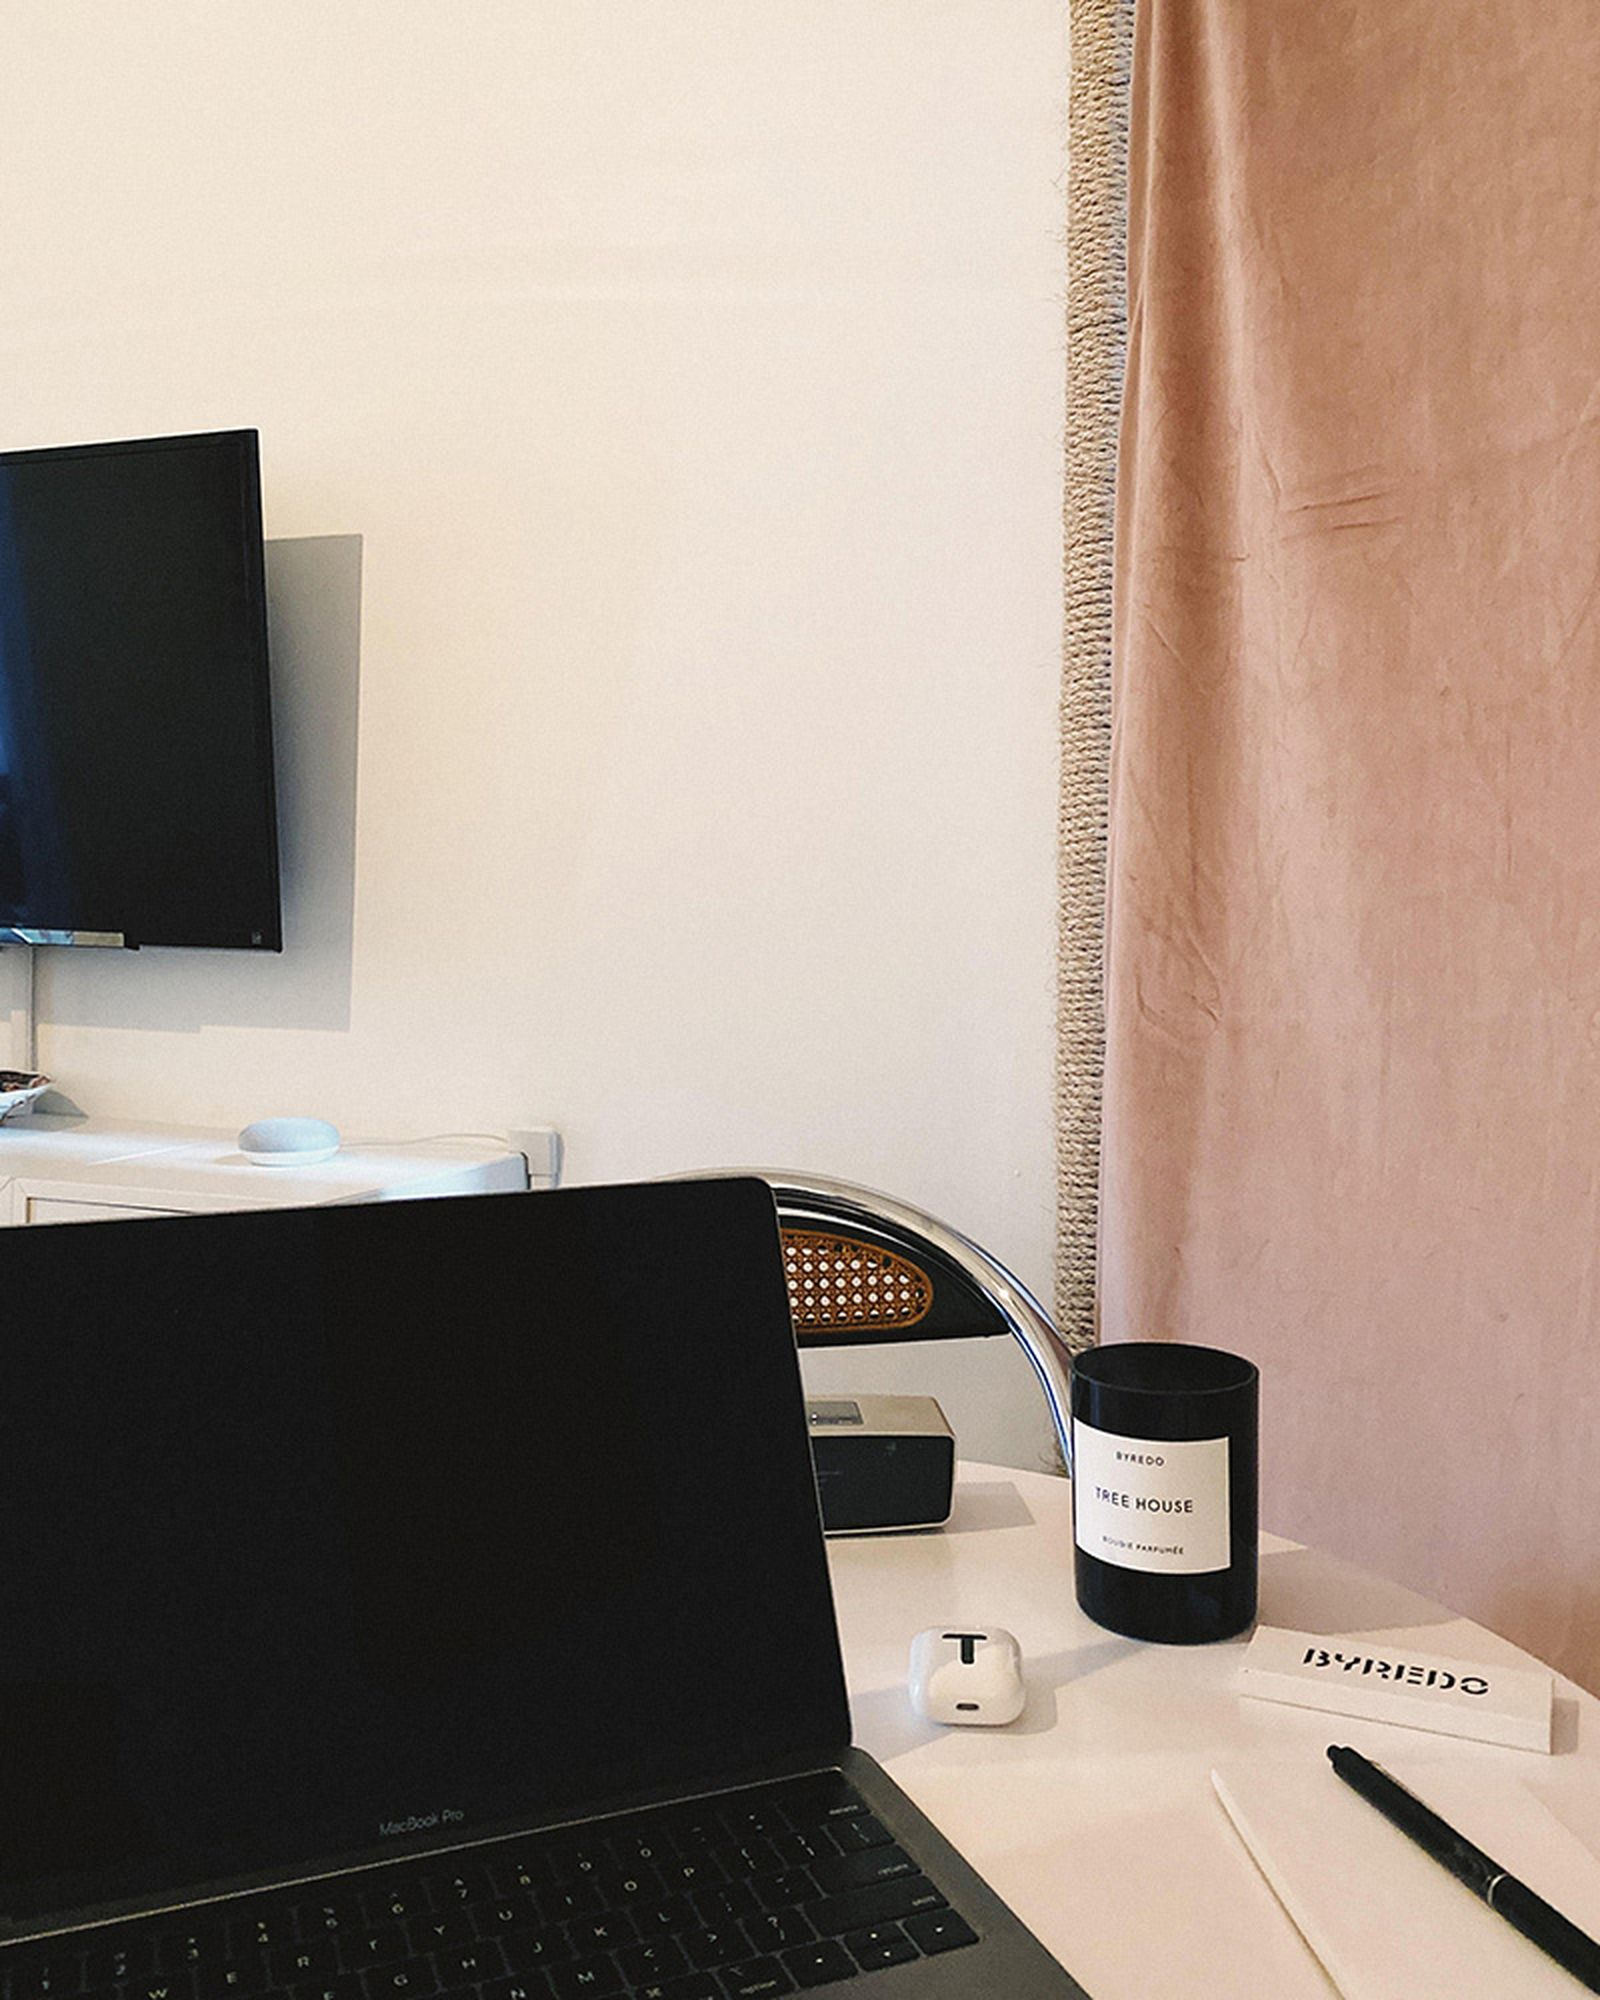 wfh-office-tour-look-inside-home-offices-01